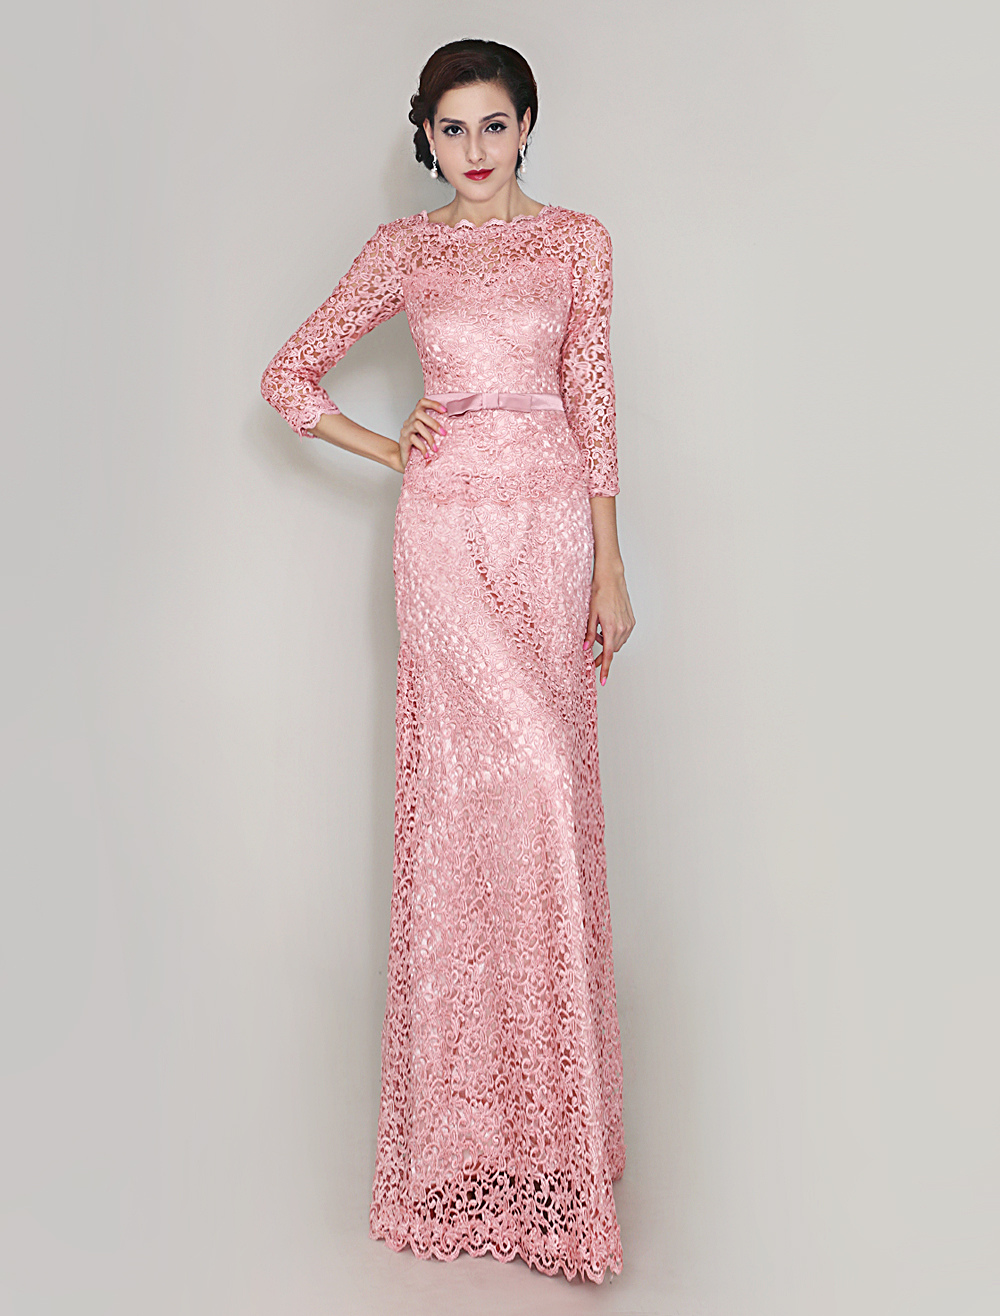 Pink Sheath Lace Dress For Mother of Bride (Wedding) photo